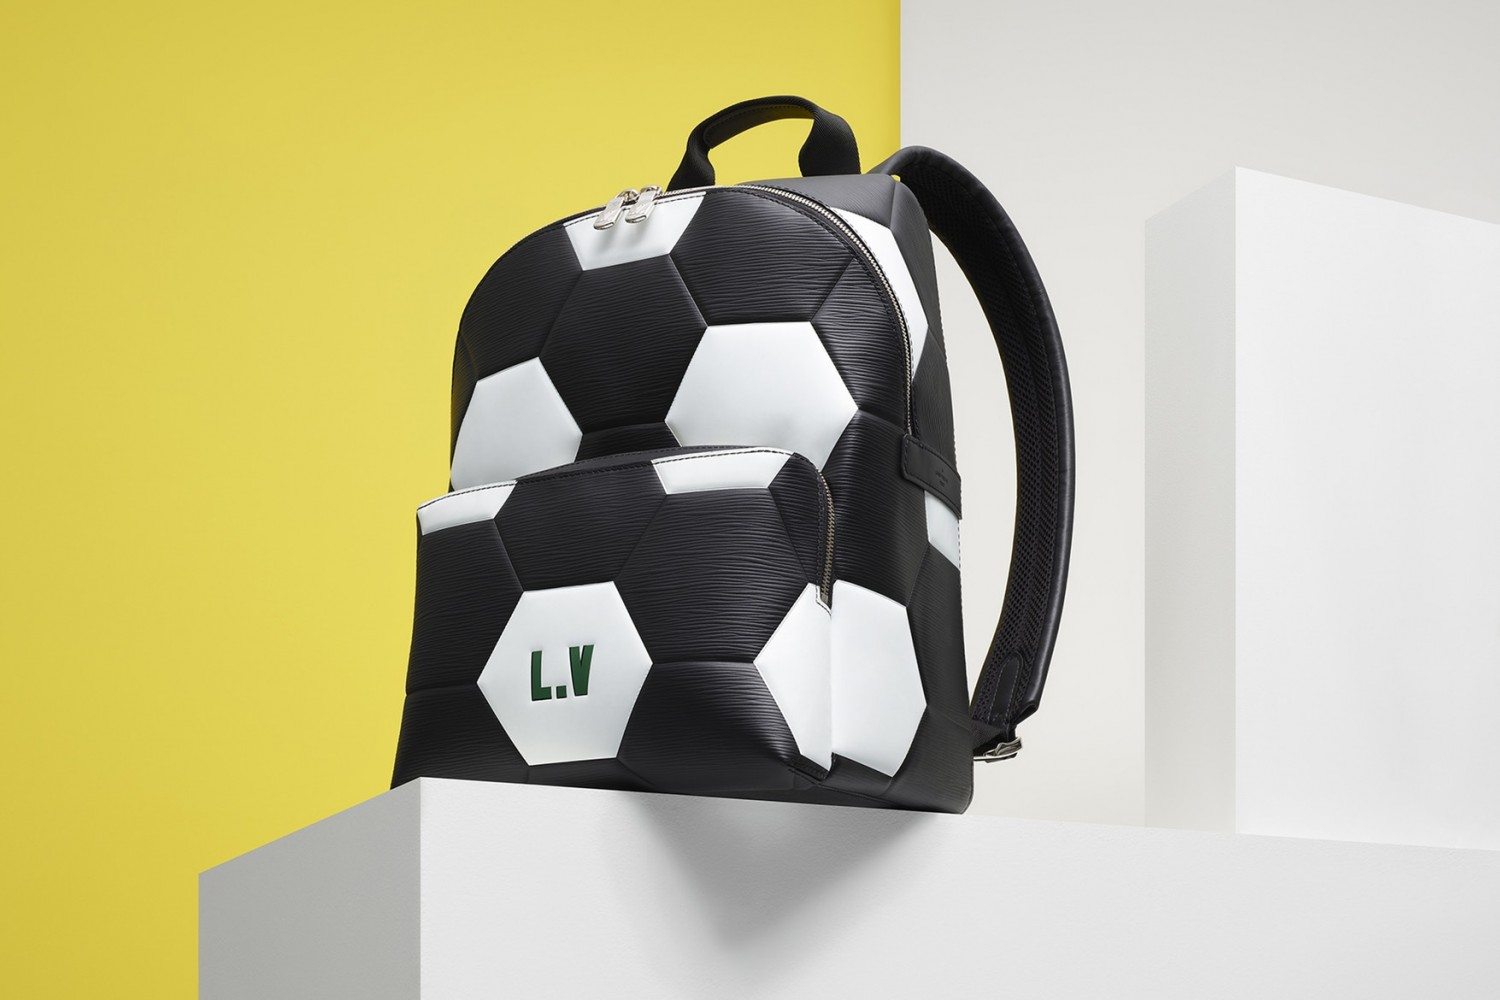 louis-vuitton-2018-fifa-world-cup-leather-accessories-4